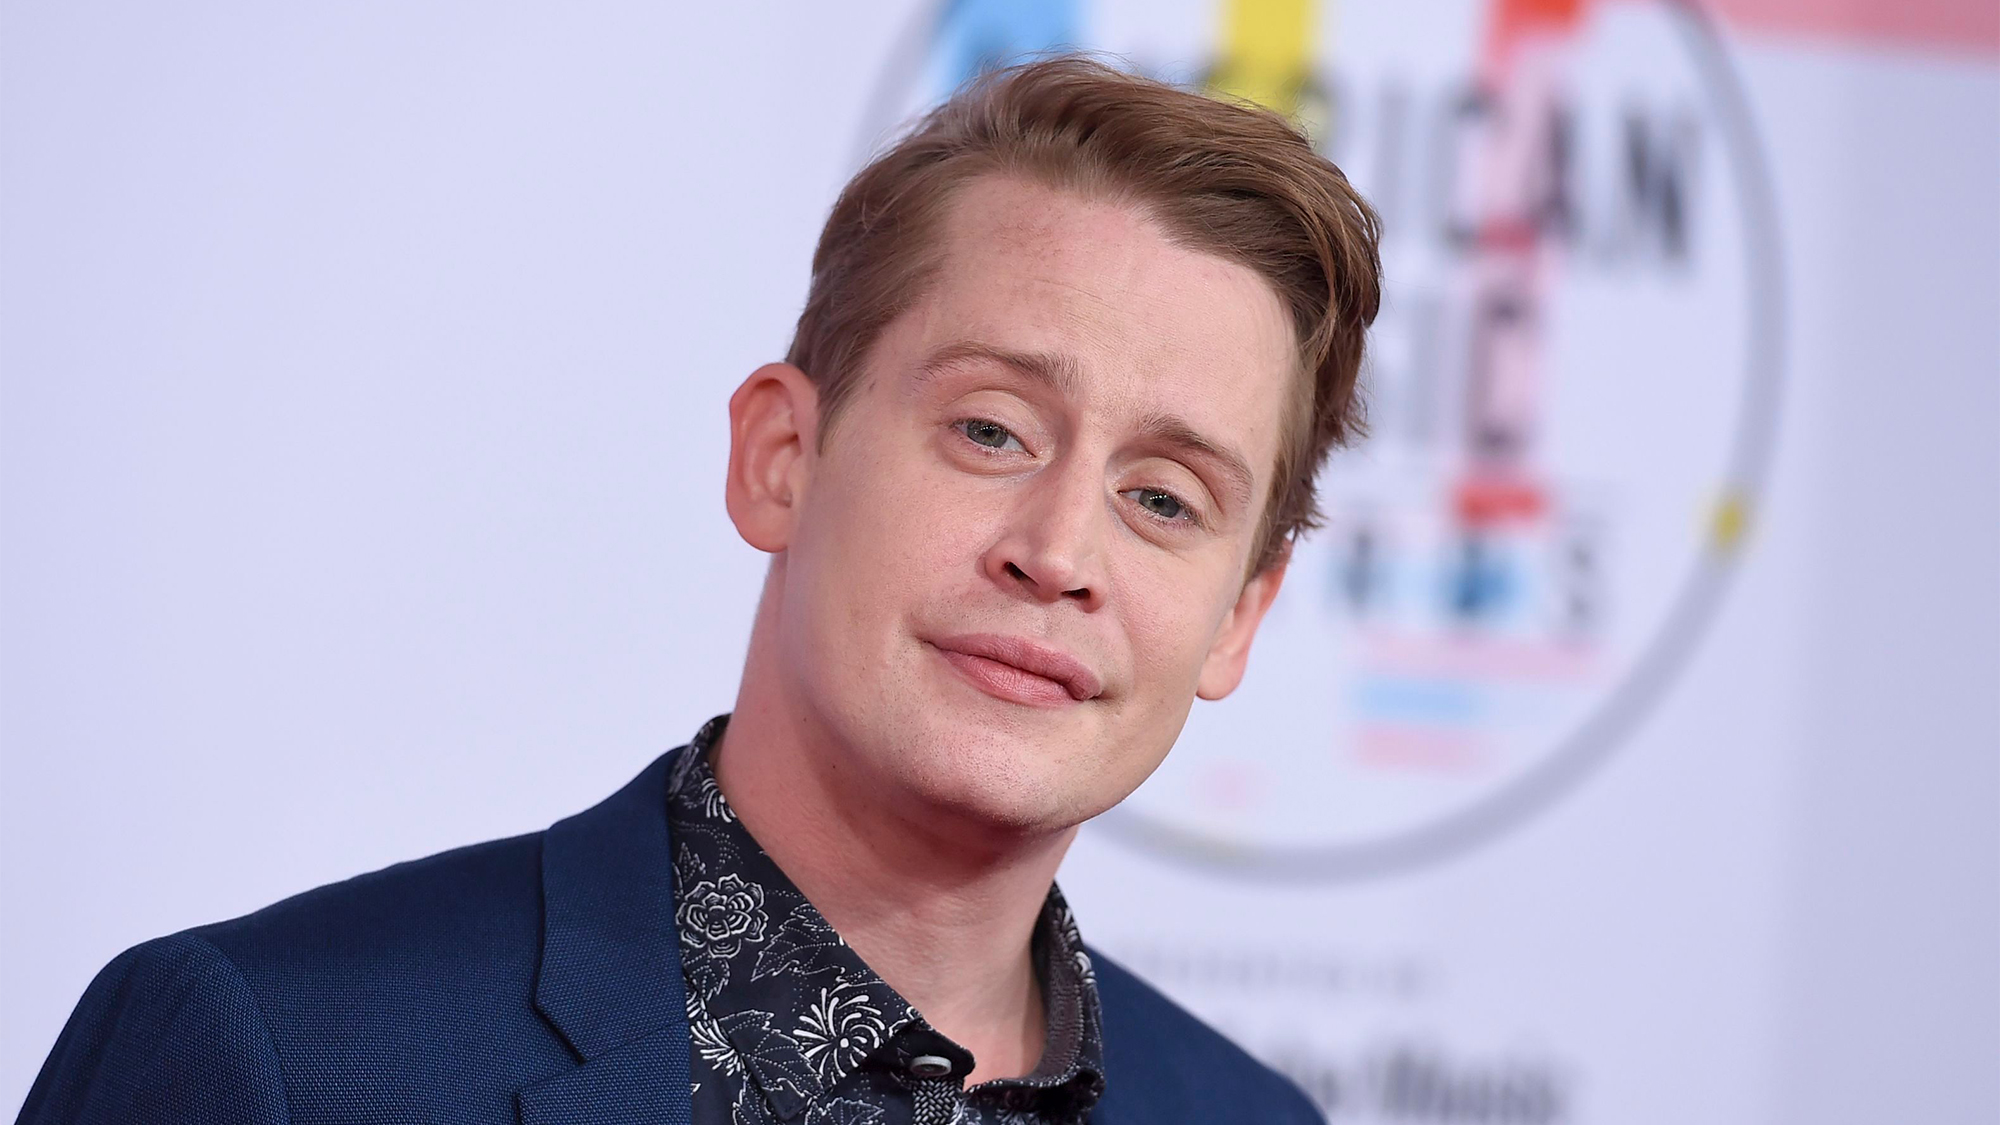 ryan-murphy-posts-first-pic-of-macaulay-culkin-in-character-ahead-of-american-horror-story-season-10